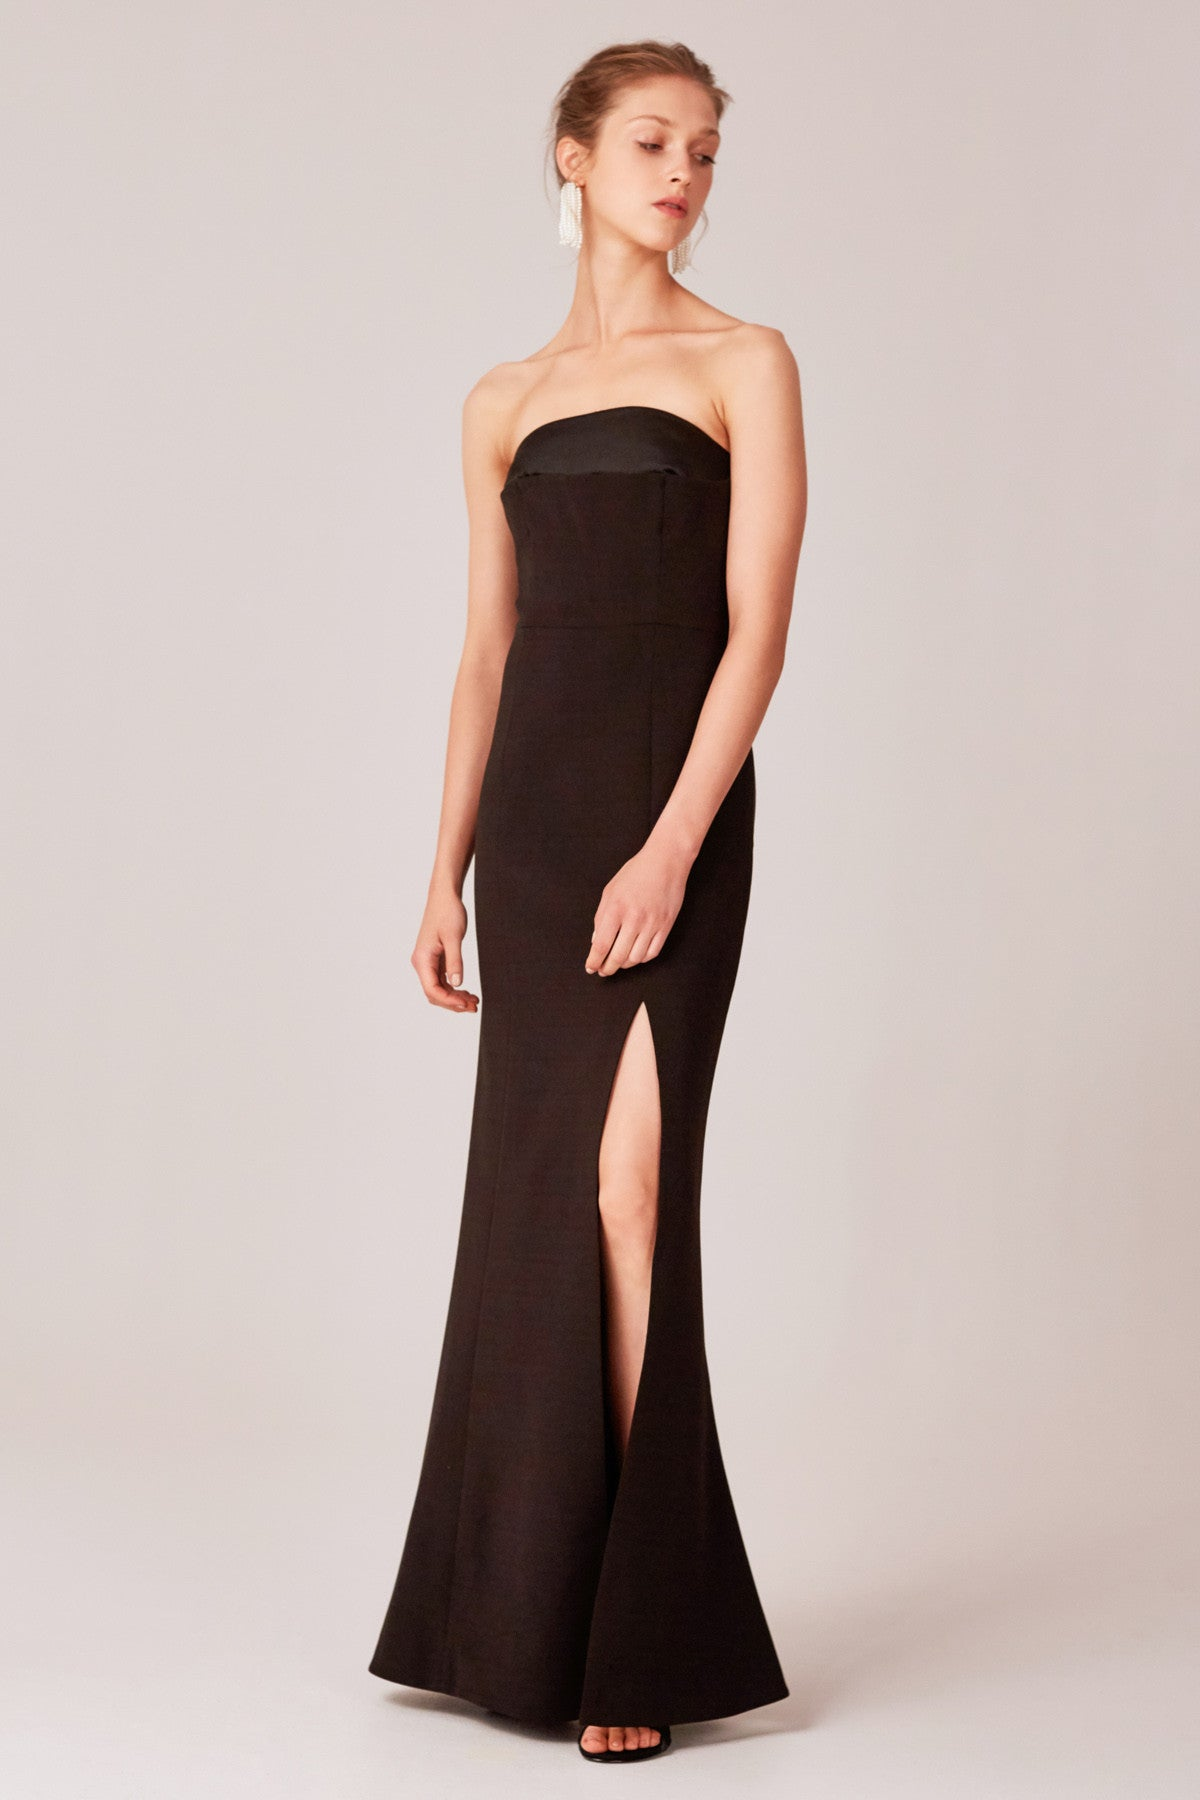 NEXT STEP GOWN black